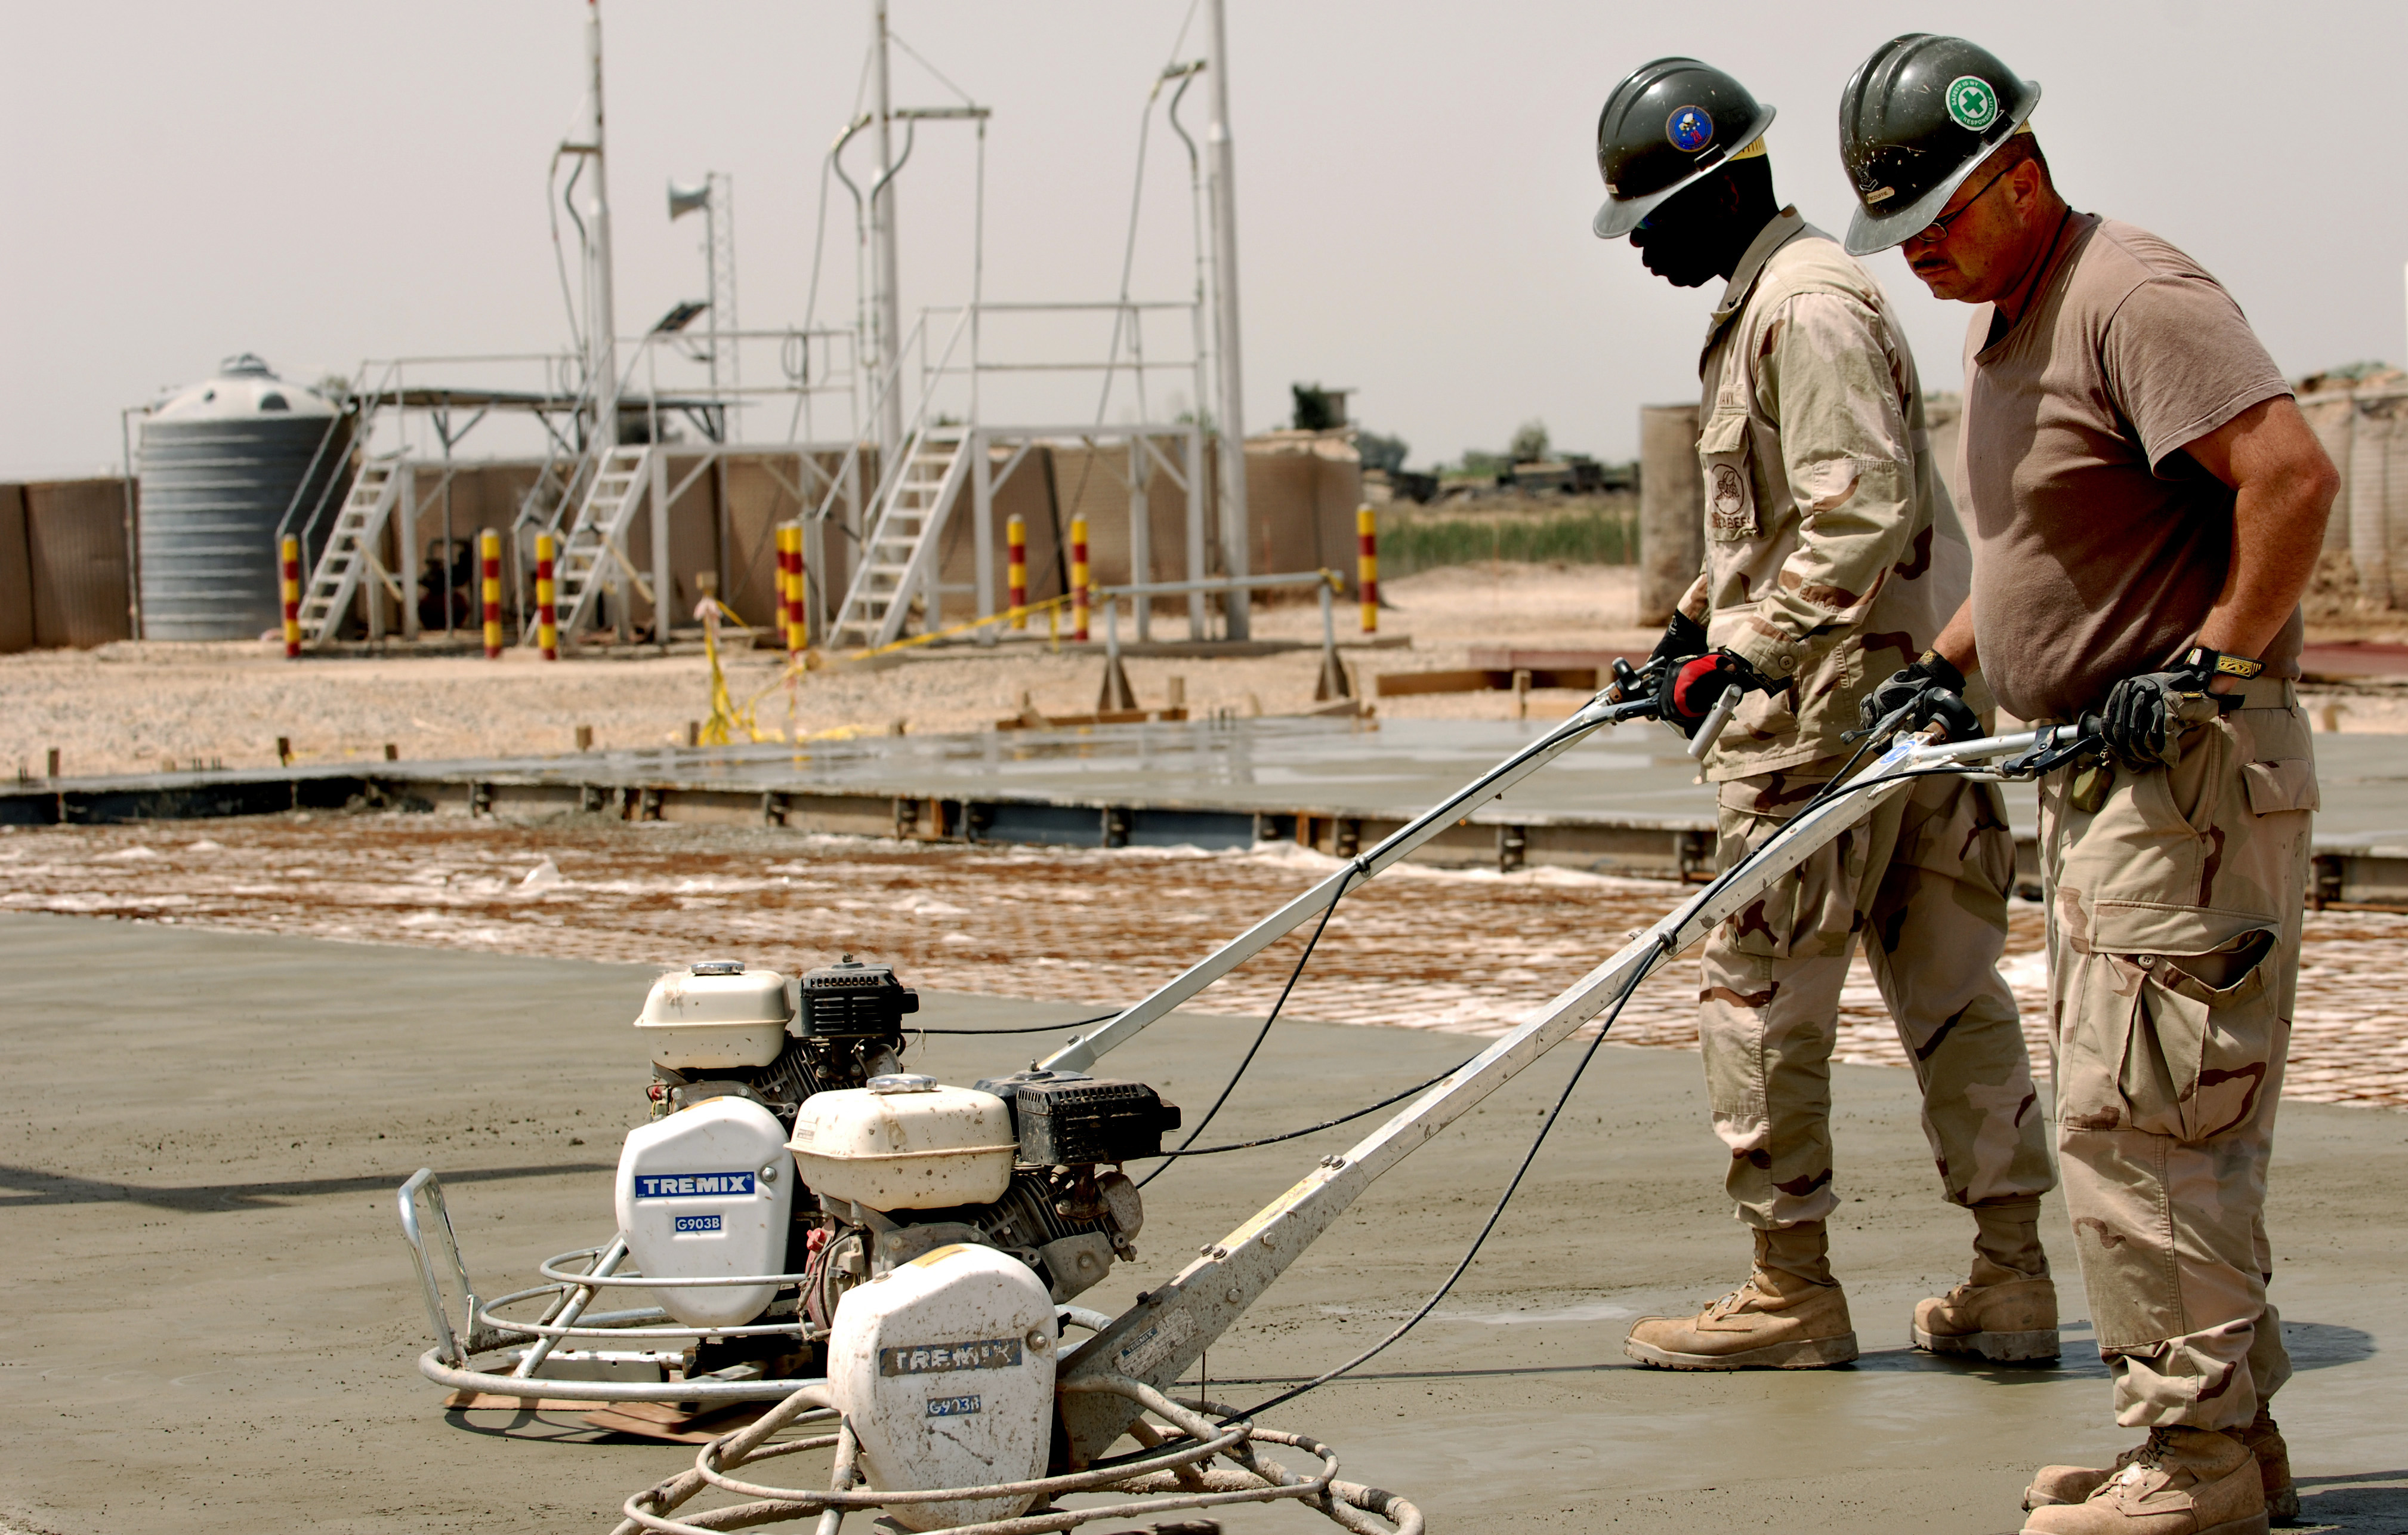 Concrete Foundation Work : File us navy n w seabees from naval mobile